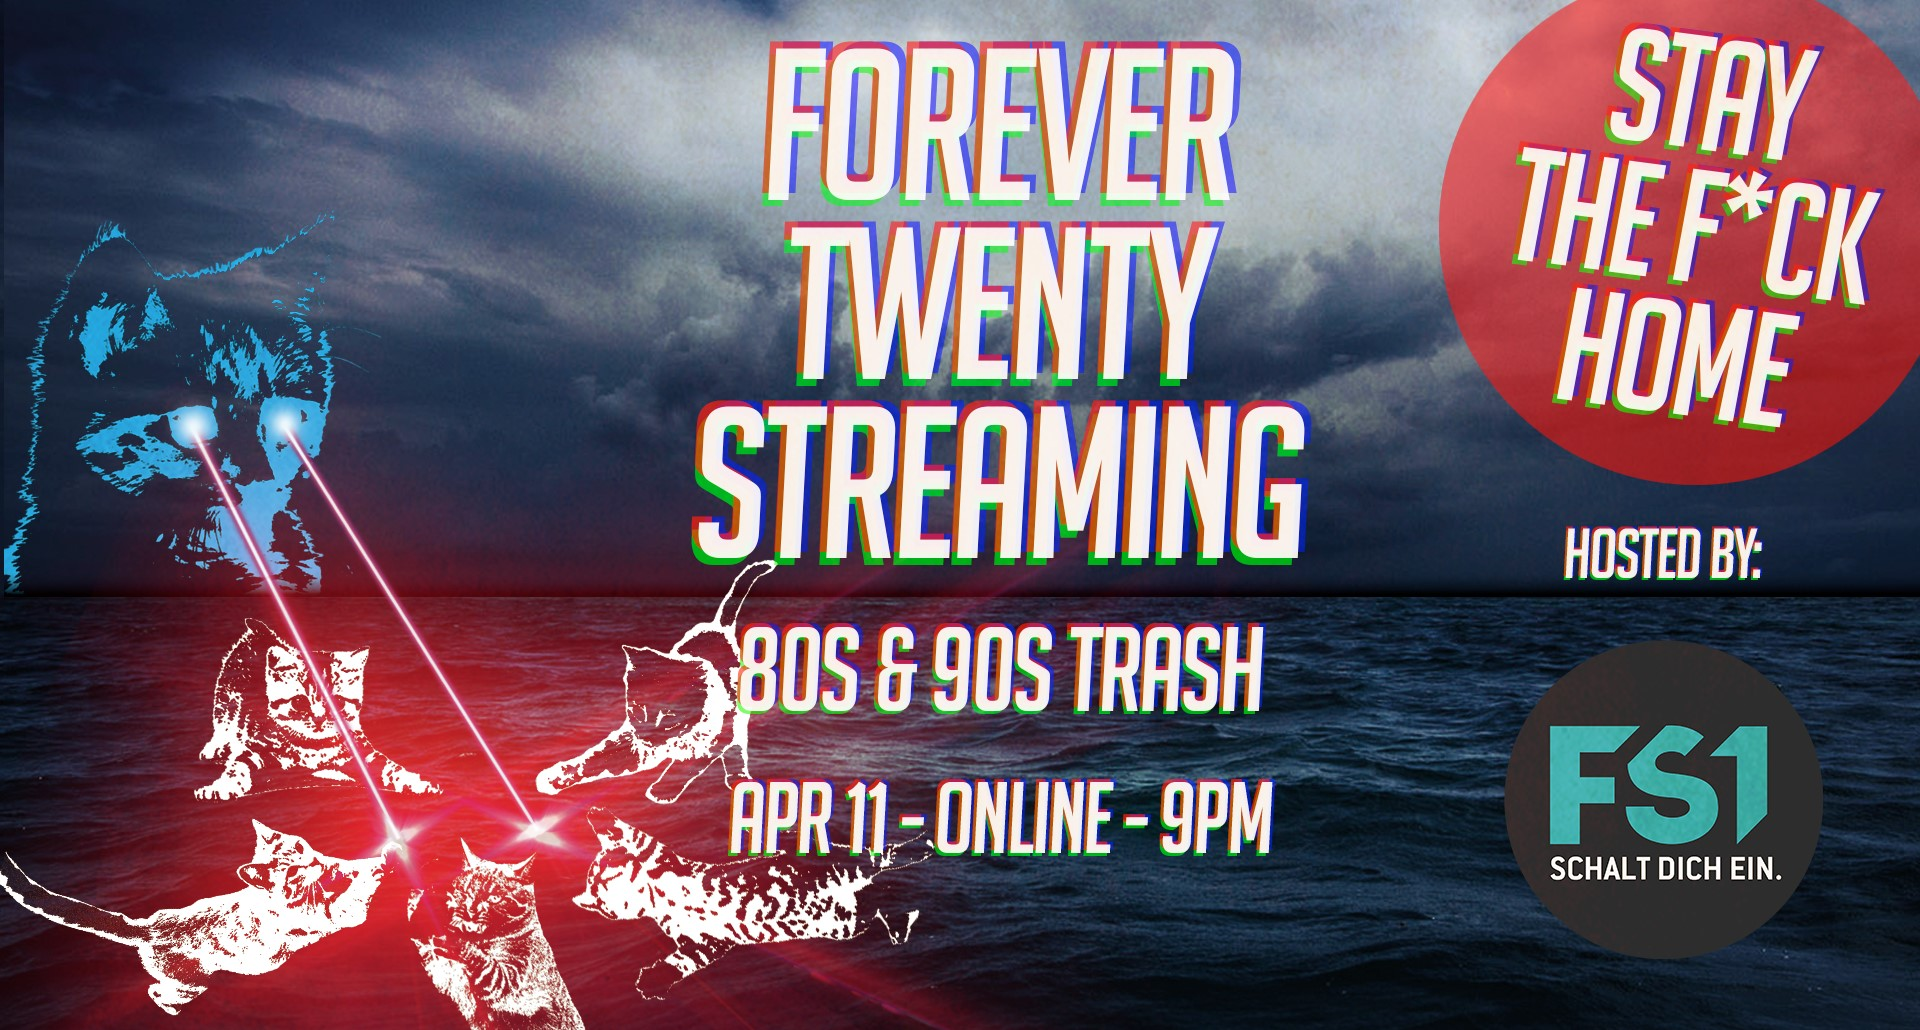 Forever Twenty Streaming